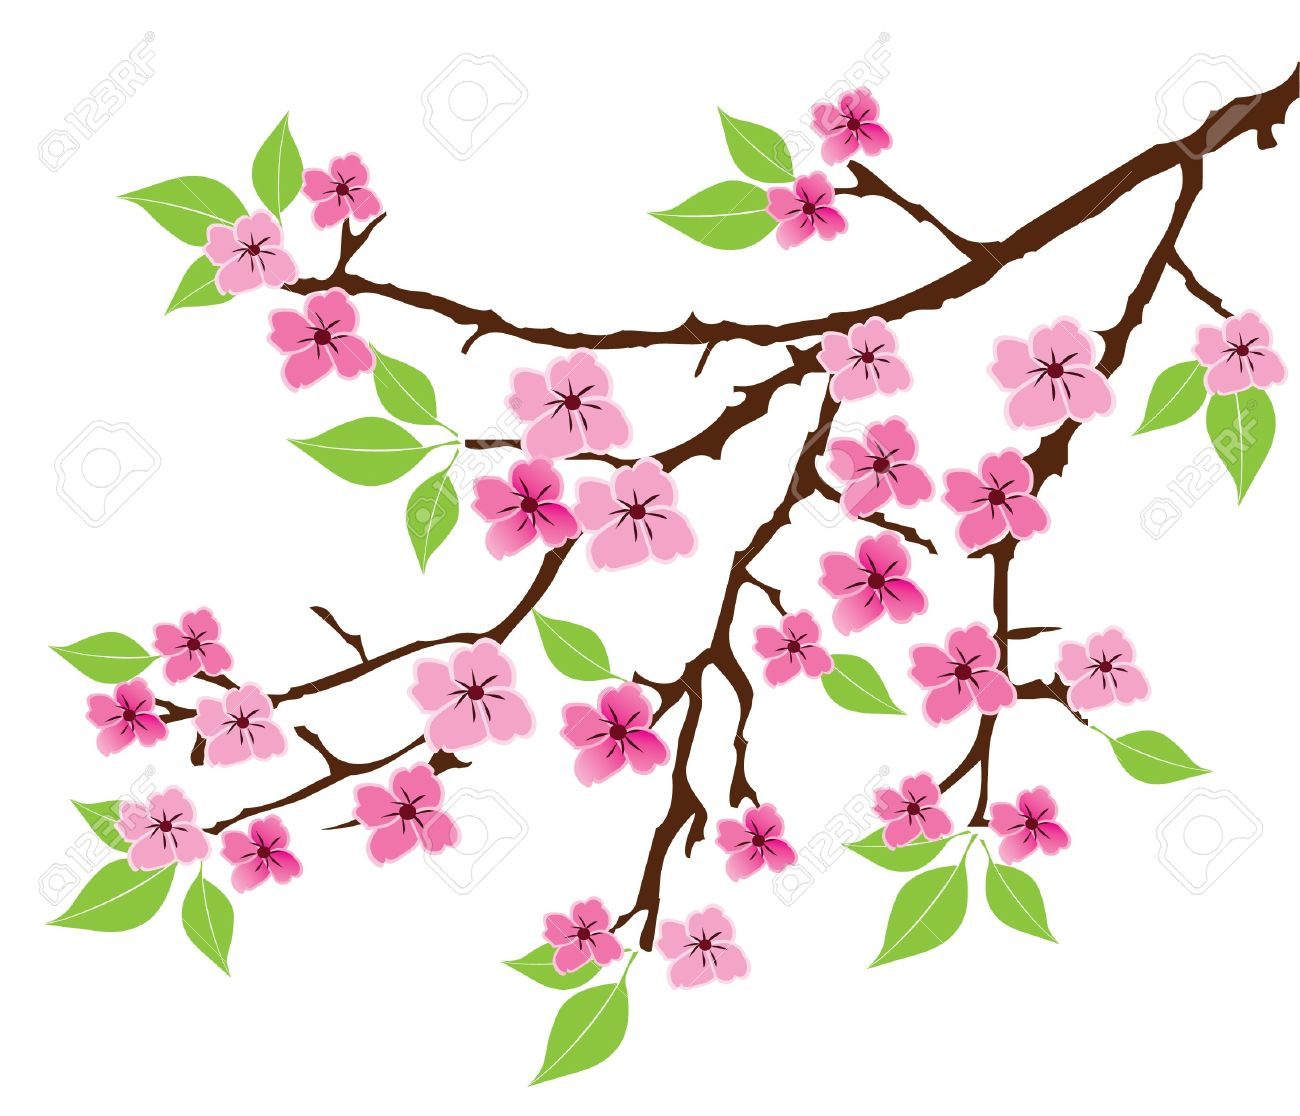 Branch Silhouette Vector Tree